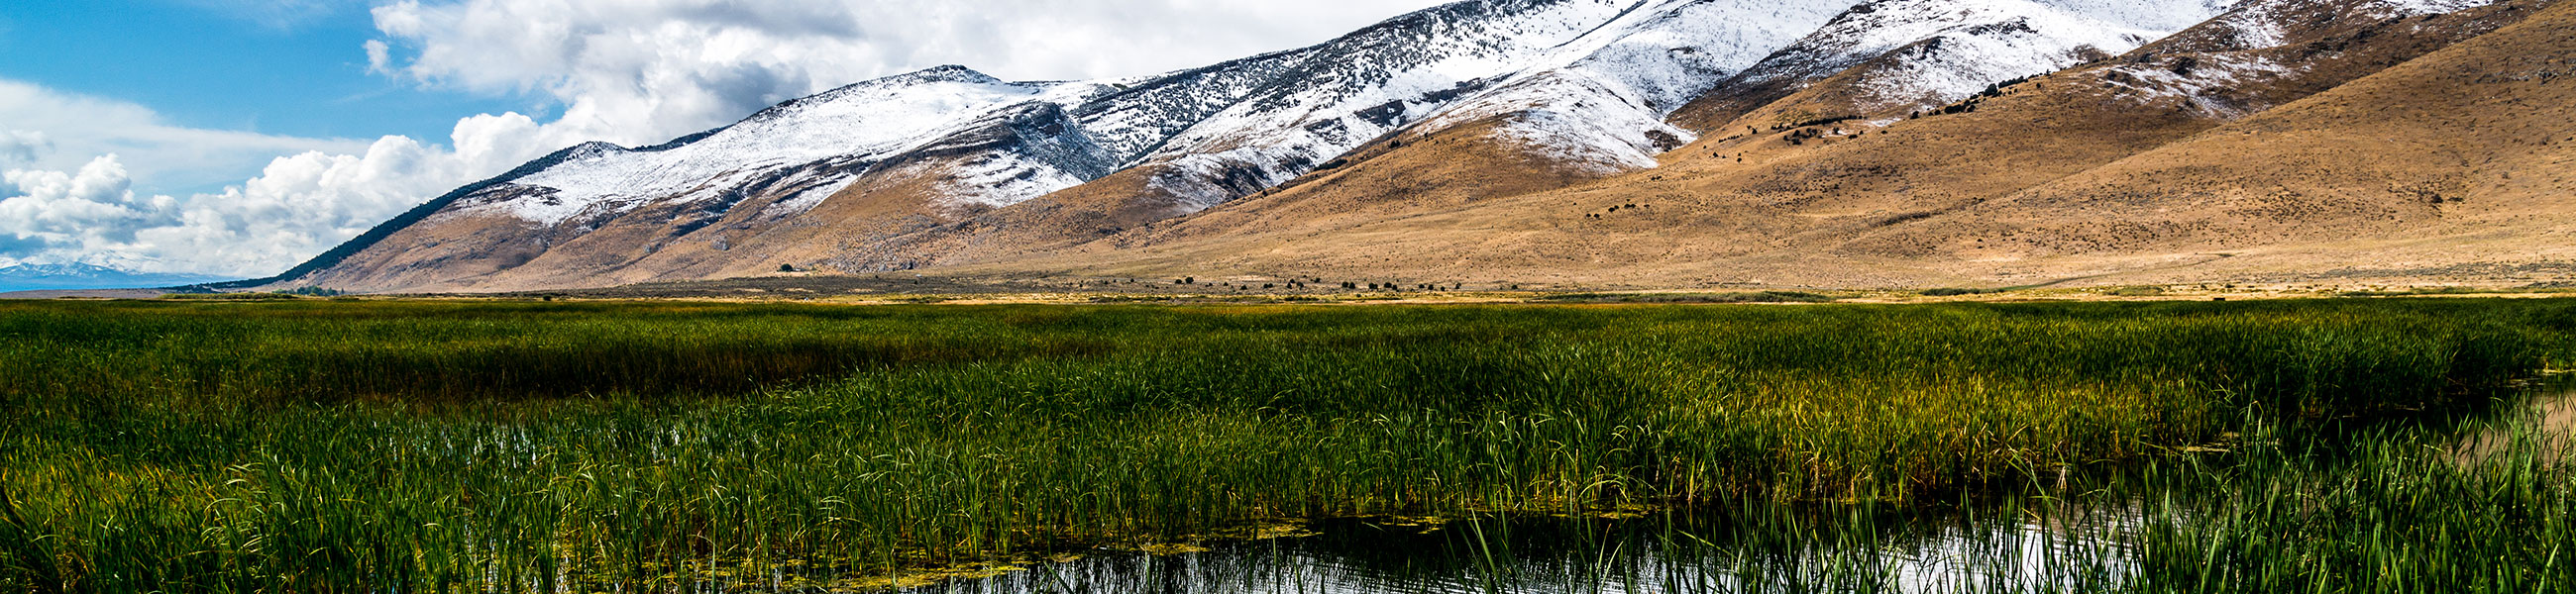 Ruby Lake National Wildlife Refuge fin septembre, Nevada